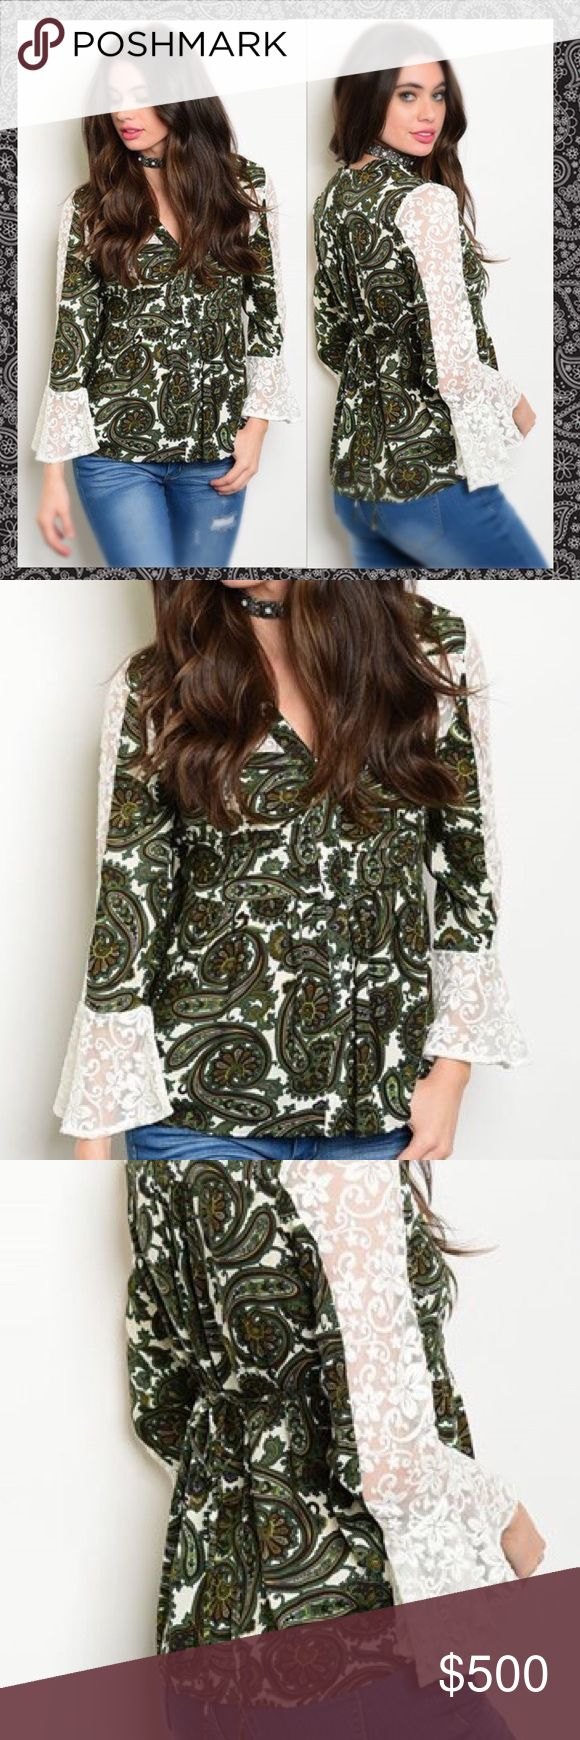 ✨COMING SOON✨Olive Paisley Laced BoHo Beauty✨ 🆕Fantastic long laced bell sleeved olive/white BoHo peasant top...relaxed fit with a slight flared waist and ties in the back for a more fitted look...flawless top! 100% Rayon✨Like this listing to be notified of arrival✨🔹NO TRADES🔹PRICE WILL BE FIRM UNLESS BUNDLED🔹💟20% OFF BUNDLES💟 LDB Tops